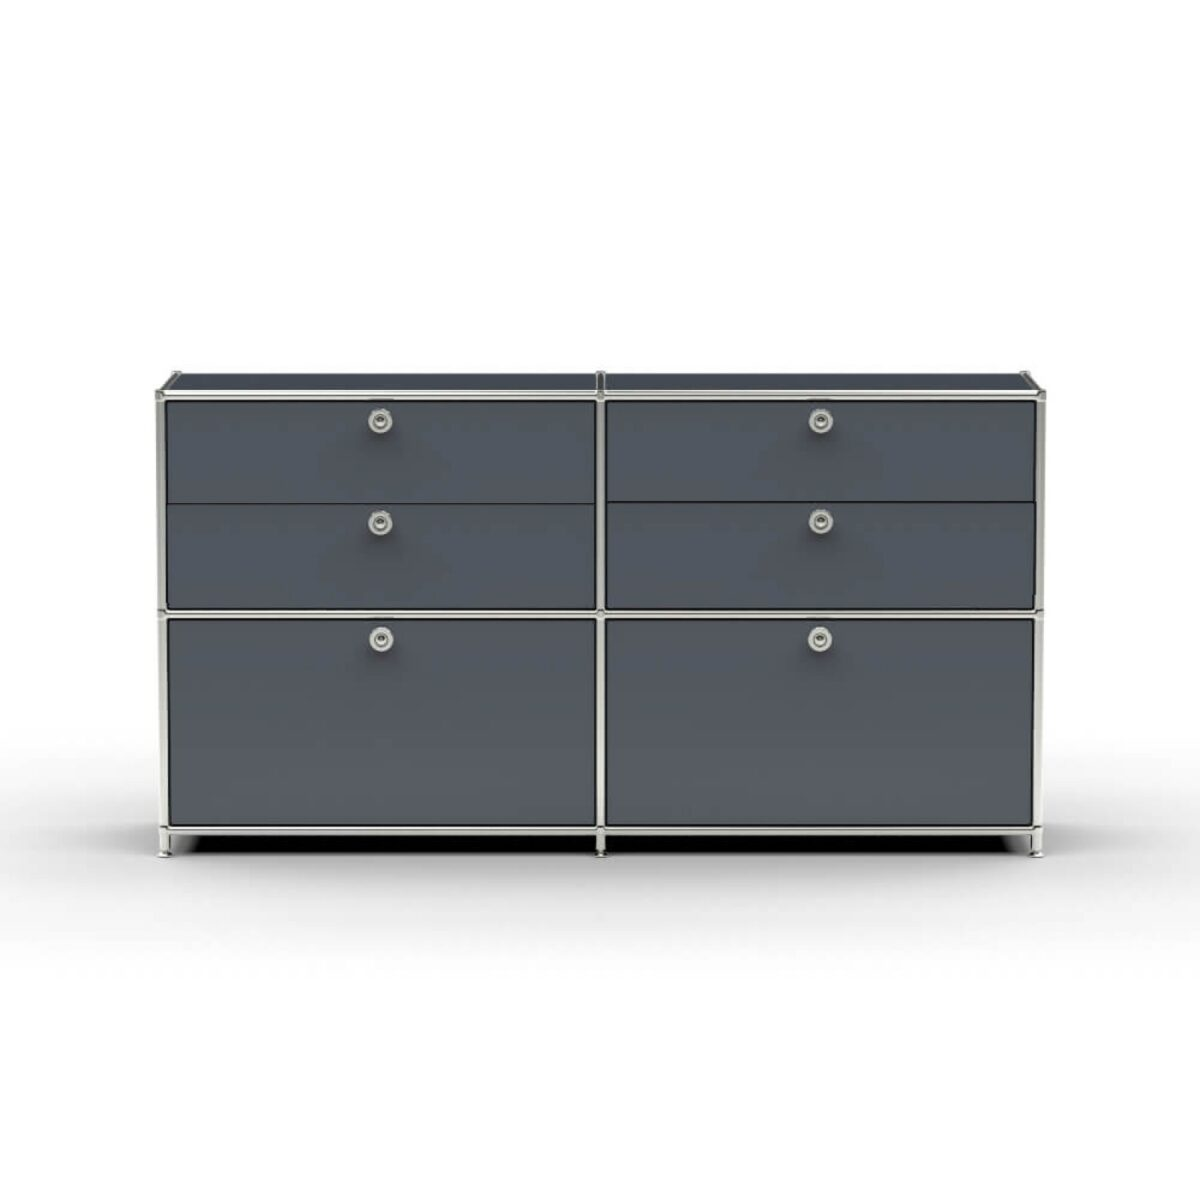 Chrom- Glas Regale Design Sideboard T22